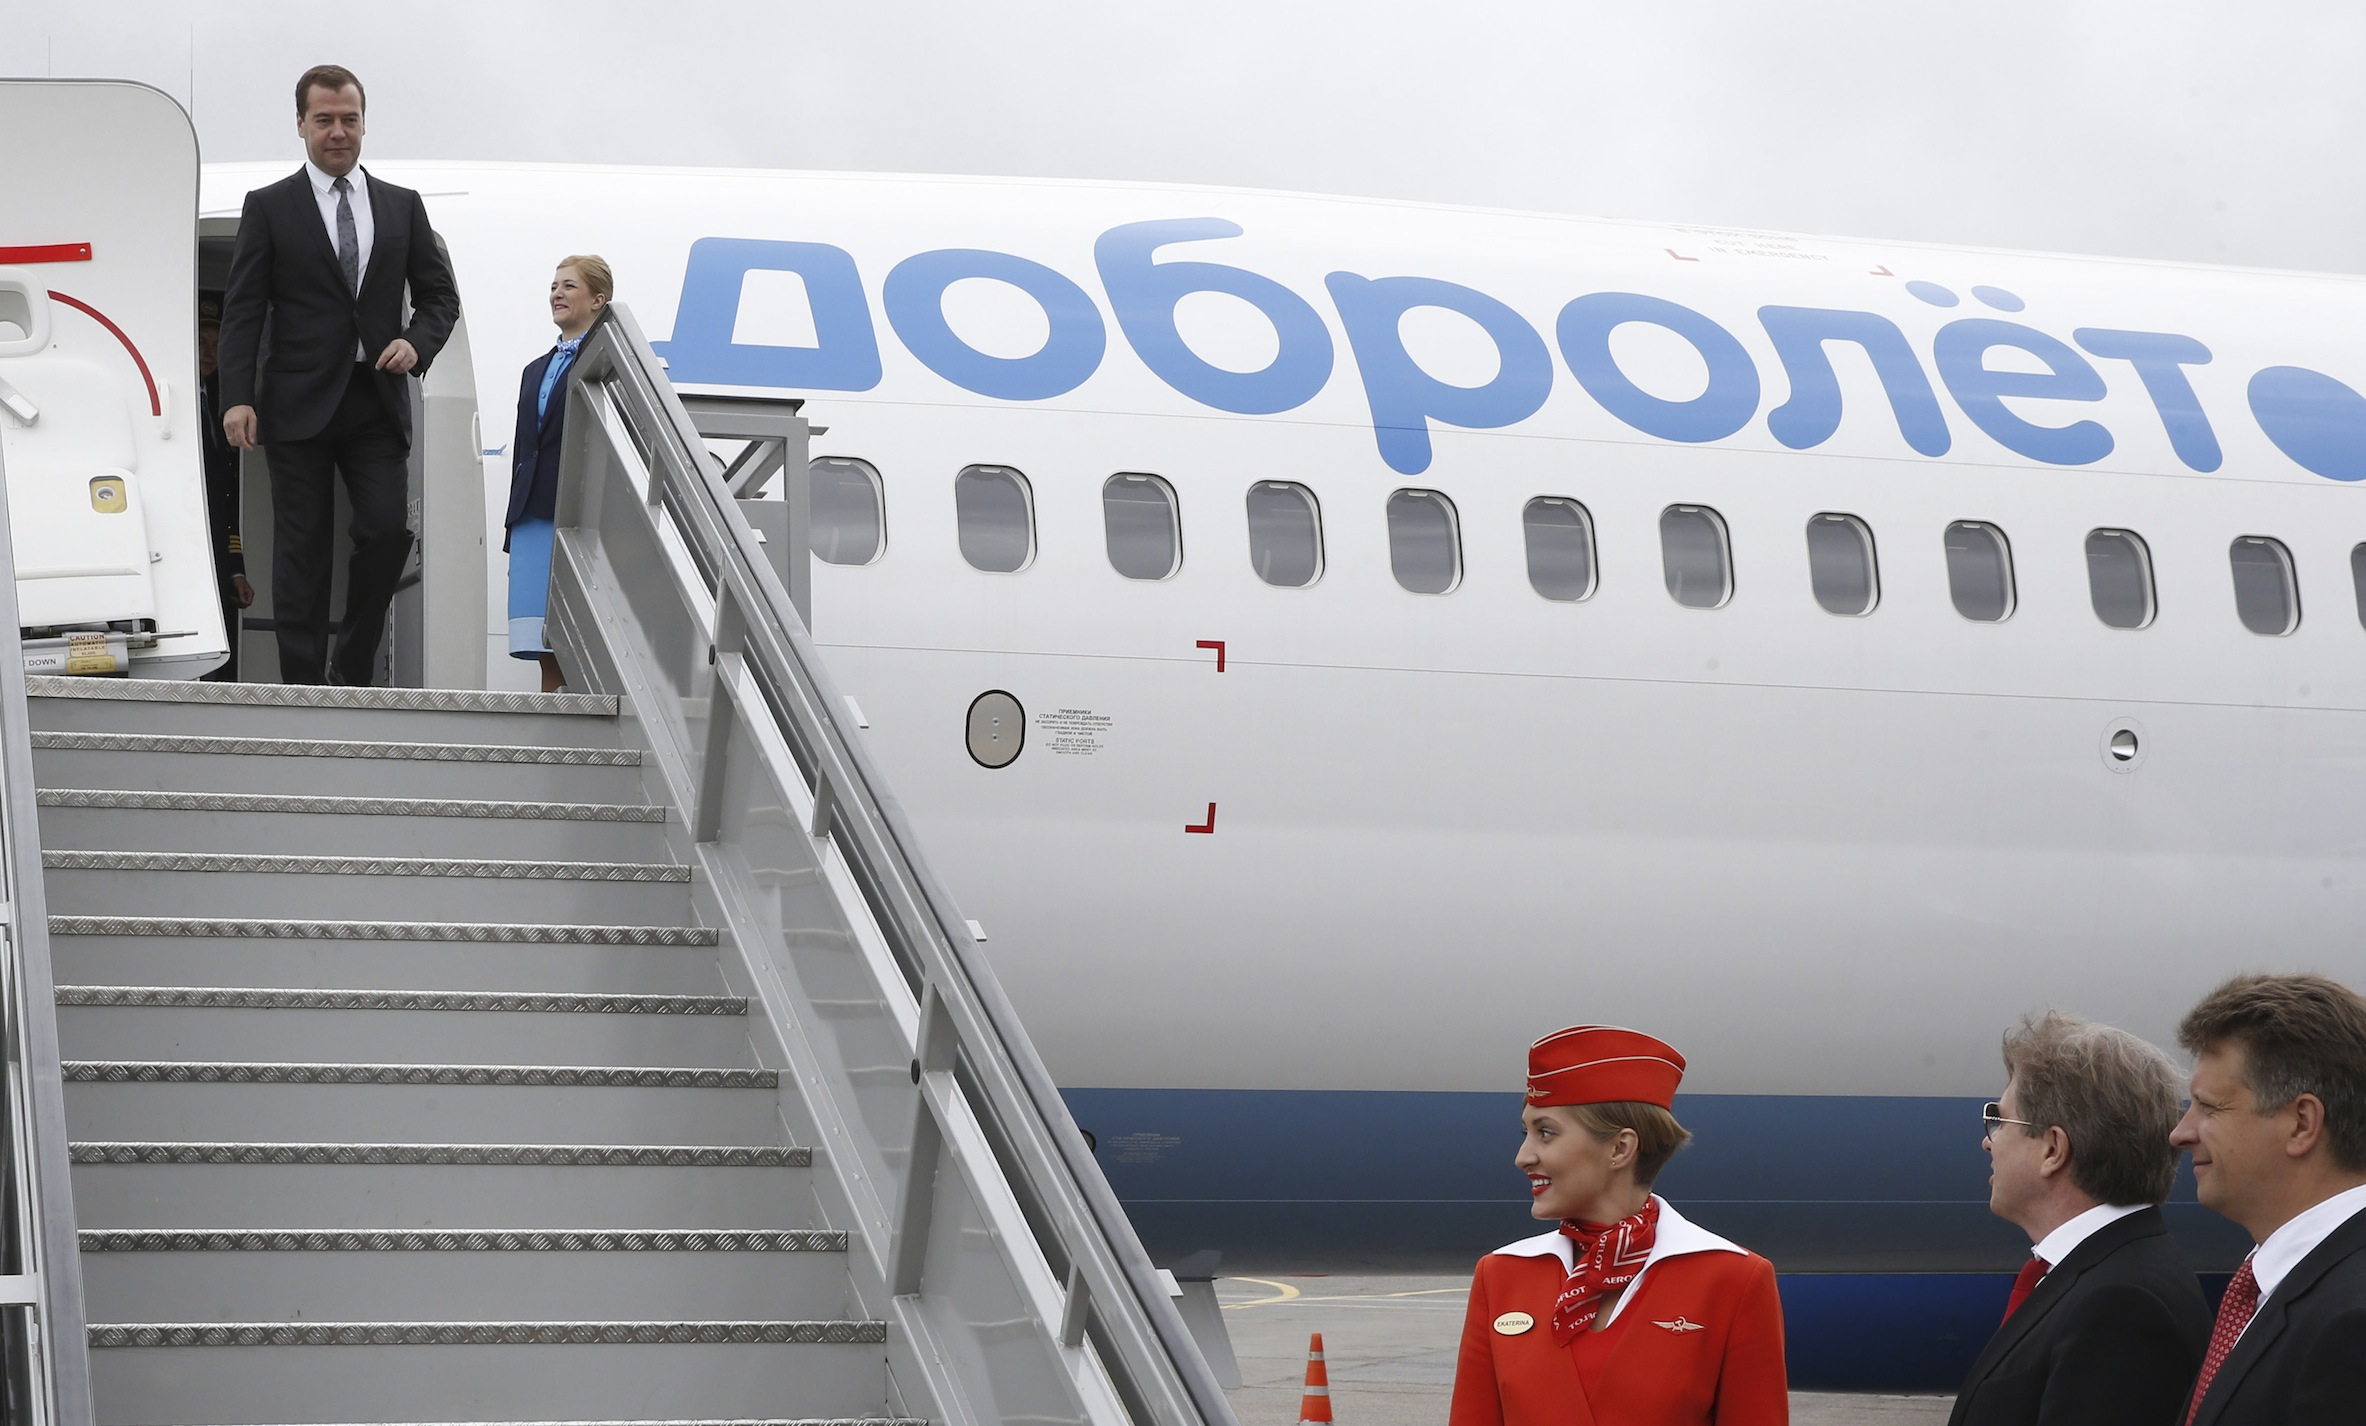 Russian Prime Minister Dmitry Medvedev (top) inspects a Boeing 737-800 NG, owned by Dobrolet airline, with Minister of Transport Maxim Sokolov (R, bottom) and Aeroflot CEO and Director General Vitaly Savelyev (2nd R, bottom) seen in the foreground, at Sheremetyevo International Airport outside Moscow, June 10, 2014. Low-cost carrier Dobrolet, Aeroflot's new airline subsidiary, started flights to the Crimean city of Simferopol on Tuesday, according to local media. REUTERS/Dmitry Astakhov/RIA Novosti/Pool (RUSSIA  - Tags: BUSINESS TRANSPORT POLITICS) ATTENTION EDITORS - THIS IMAGE HAS BEEN SUPPLIED BY A THIRD PARTY. IT IS DISTRIBUTED, EXACTLY AS RECEIVED BY REUTERS, AS A SERVICE TO CLIENTS - RTR3T0WW